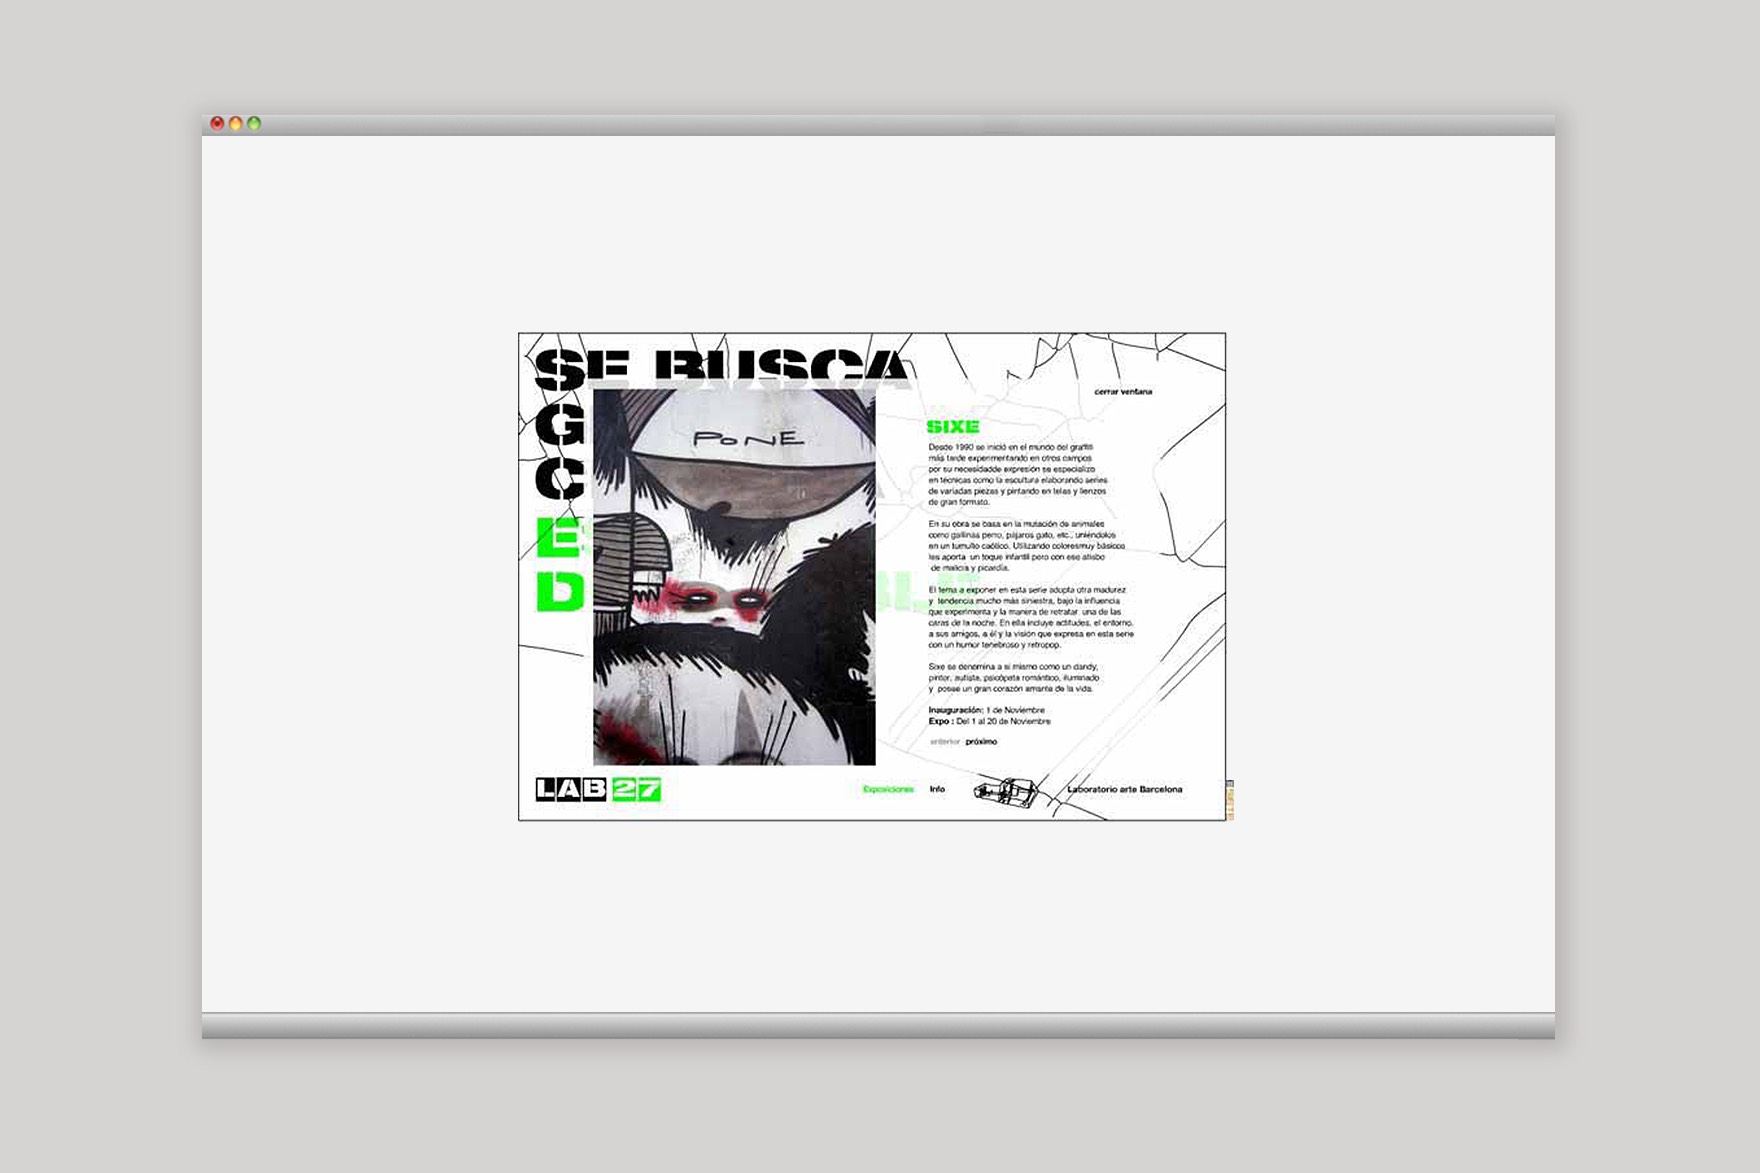 LAB 27 / WEB DESIGN